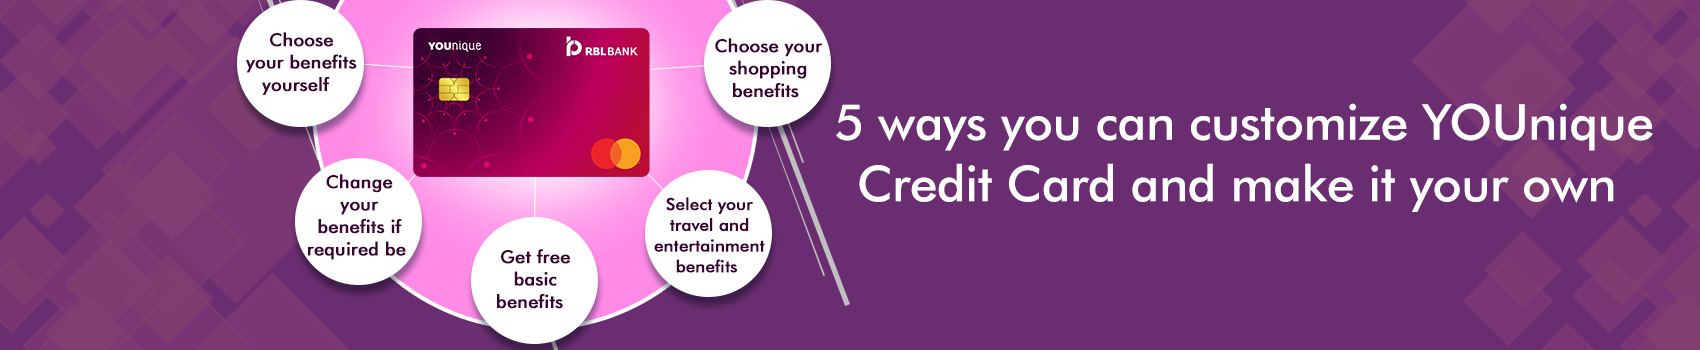 5 ways you can customize YOUnique Credit Card and make it your own